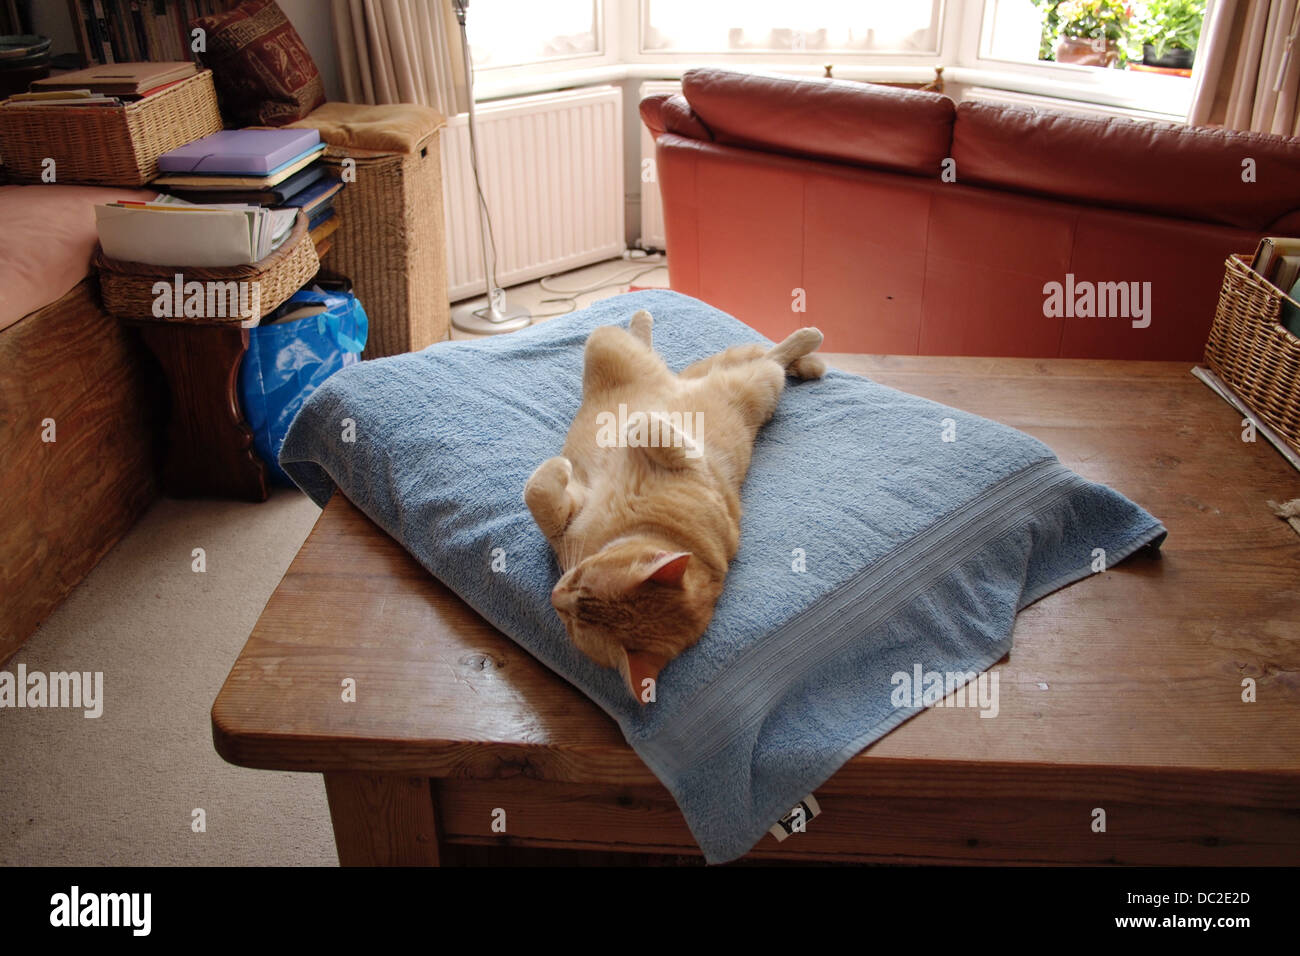 Comfy luxurious ginger house cat sleeping - Stock Image